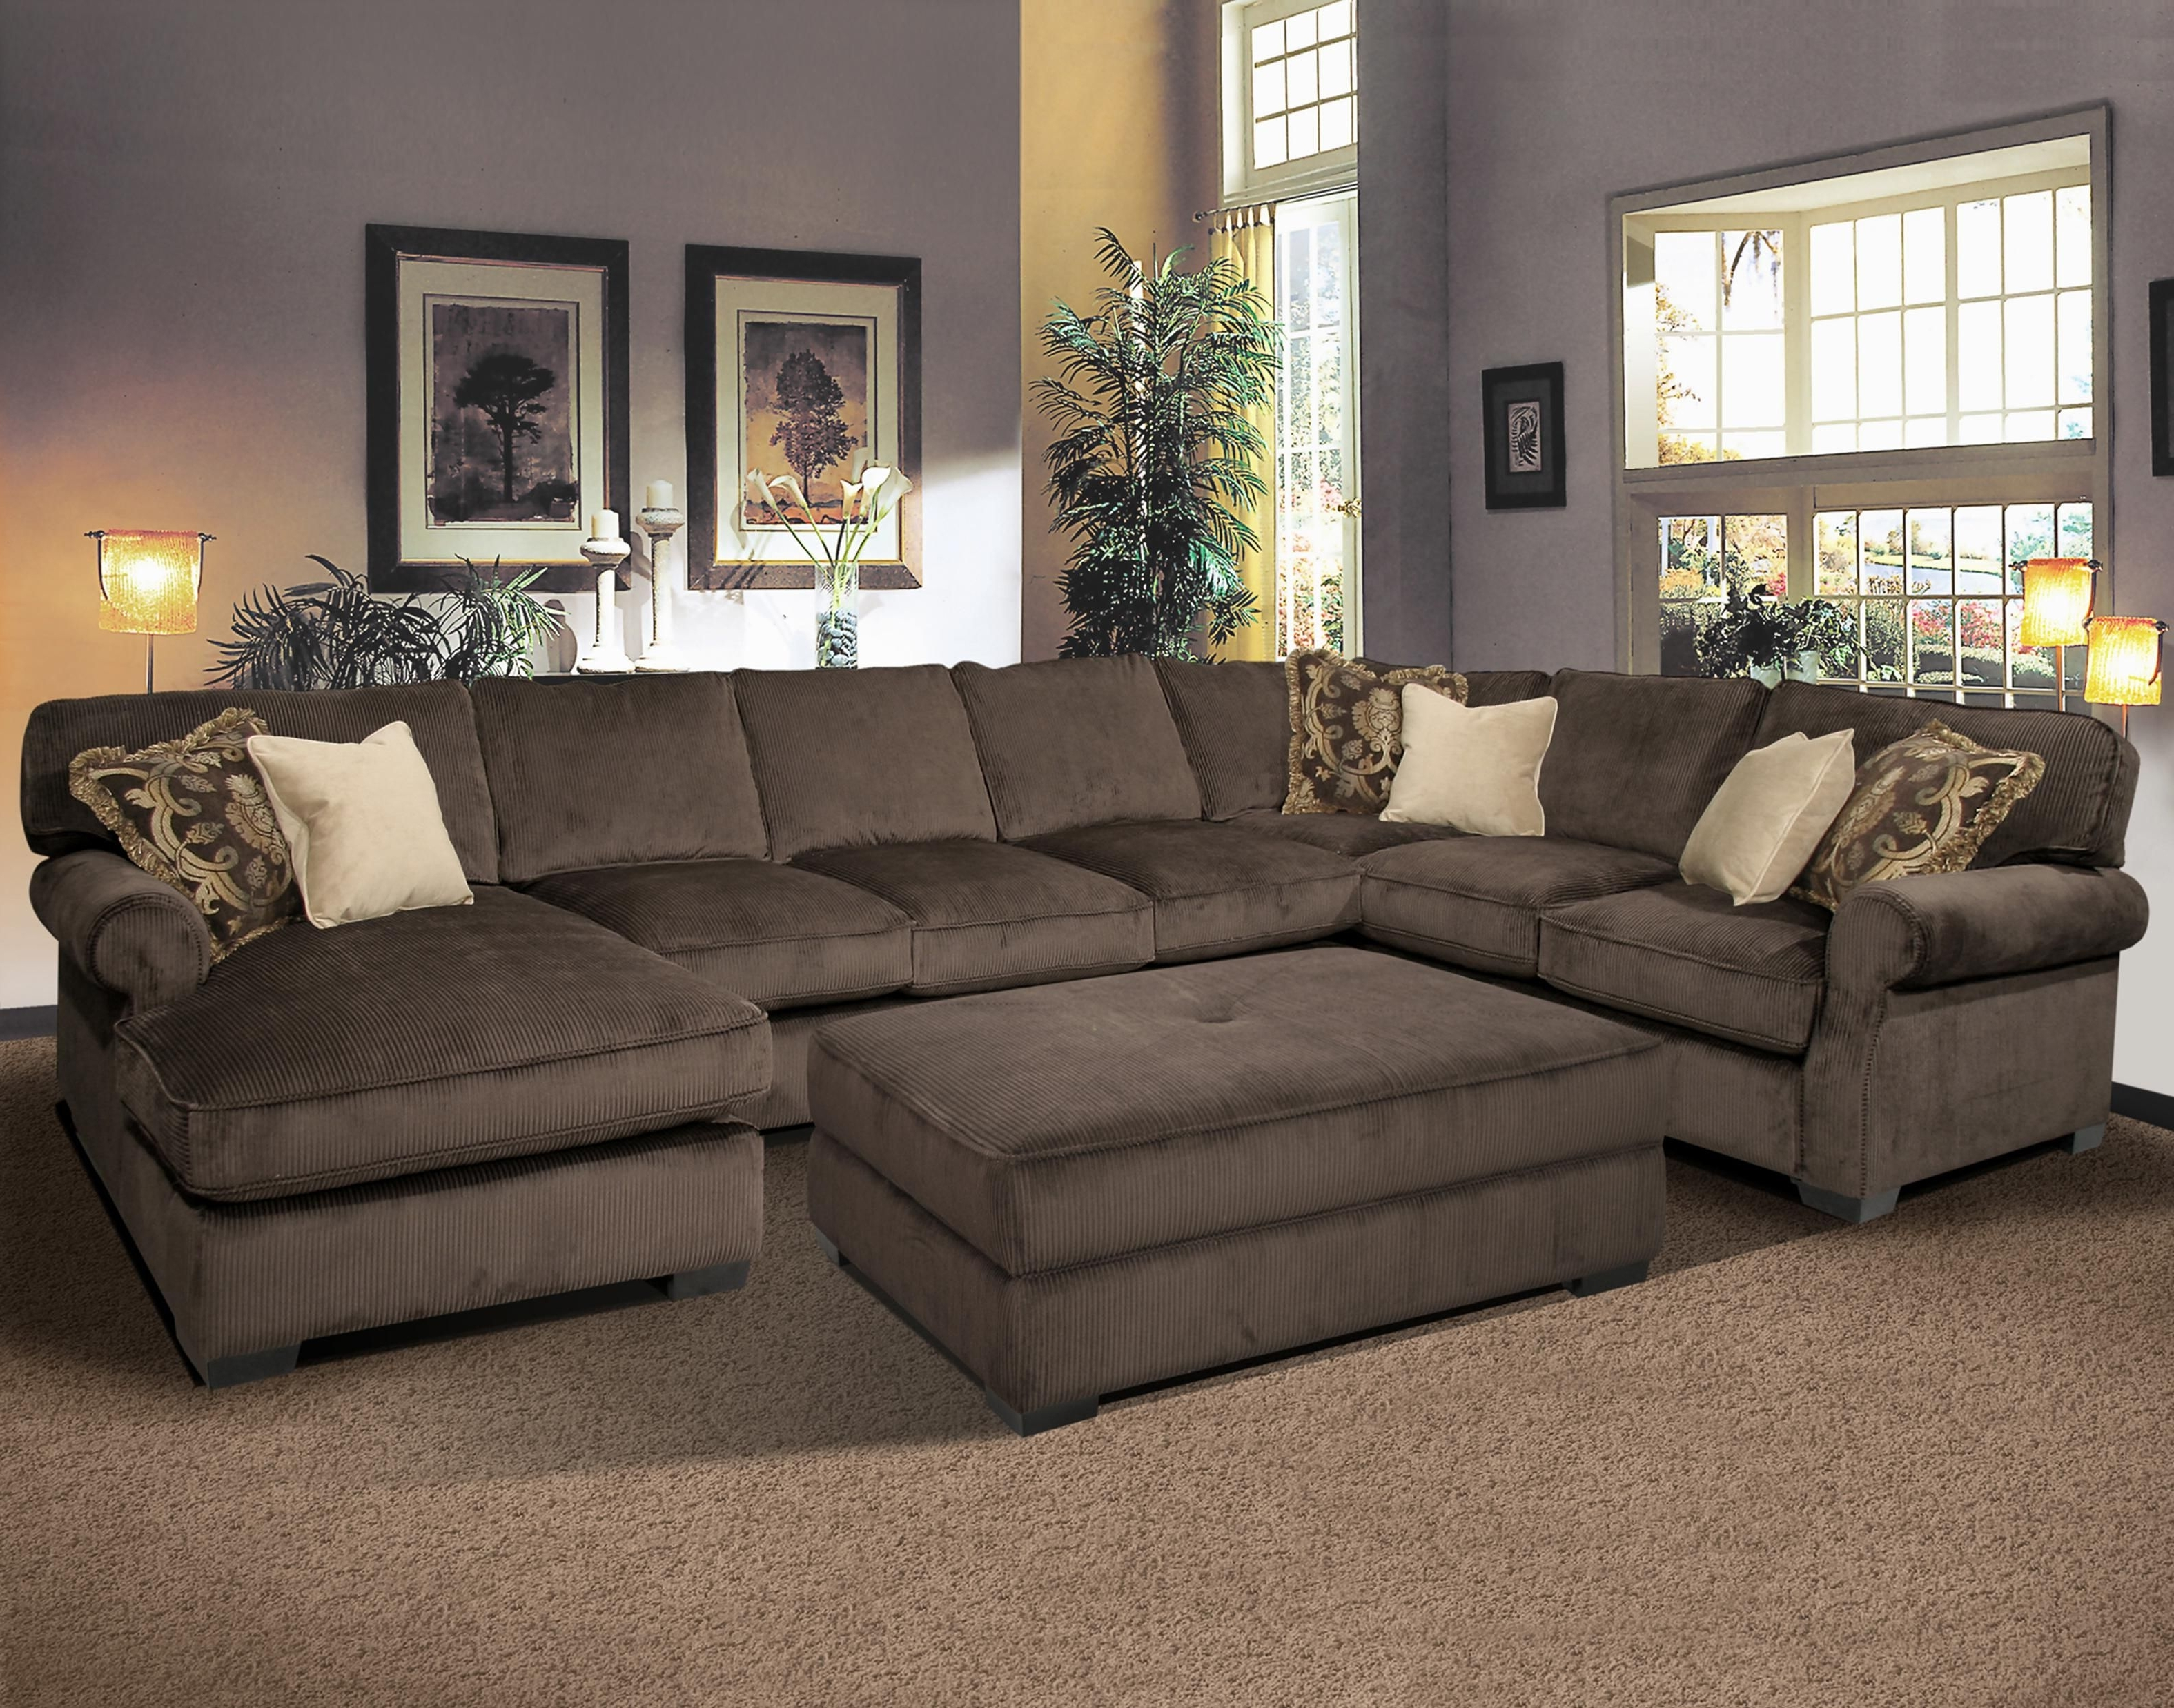 Newest Deep Seating Sectional Sofas Inside Sofa : Extra Deep Seated Sectional Sofa Best Home Furniture Design (View 14 of 20)